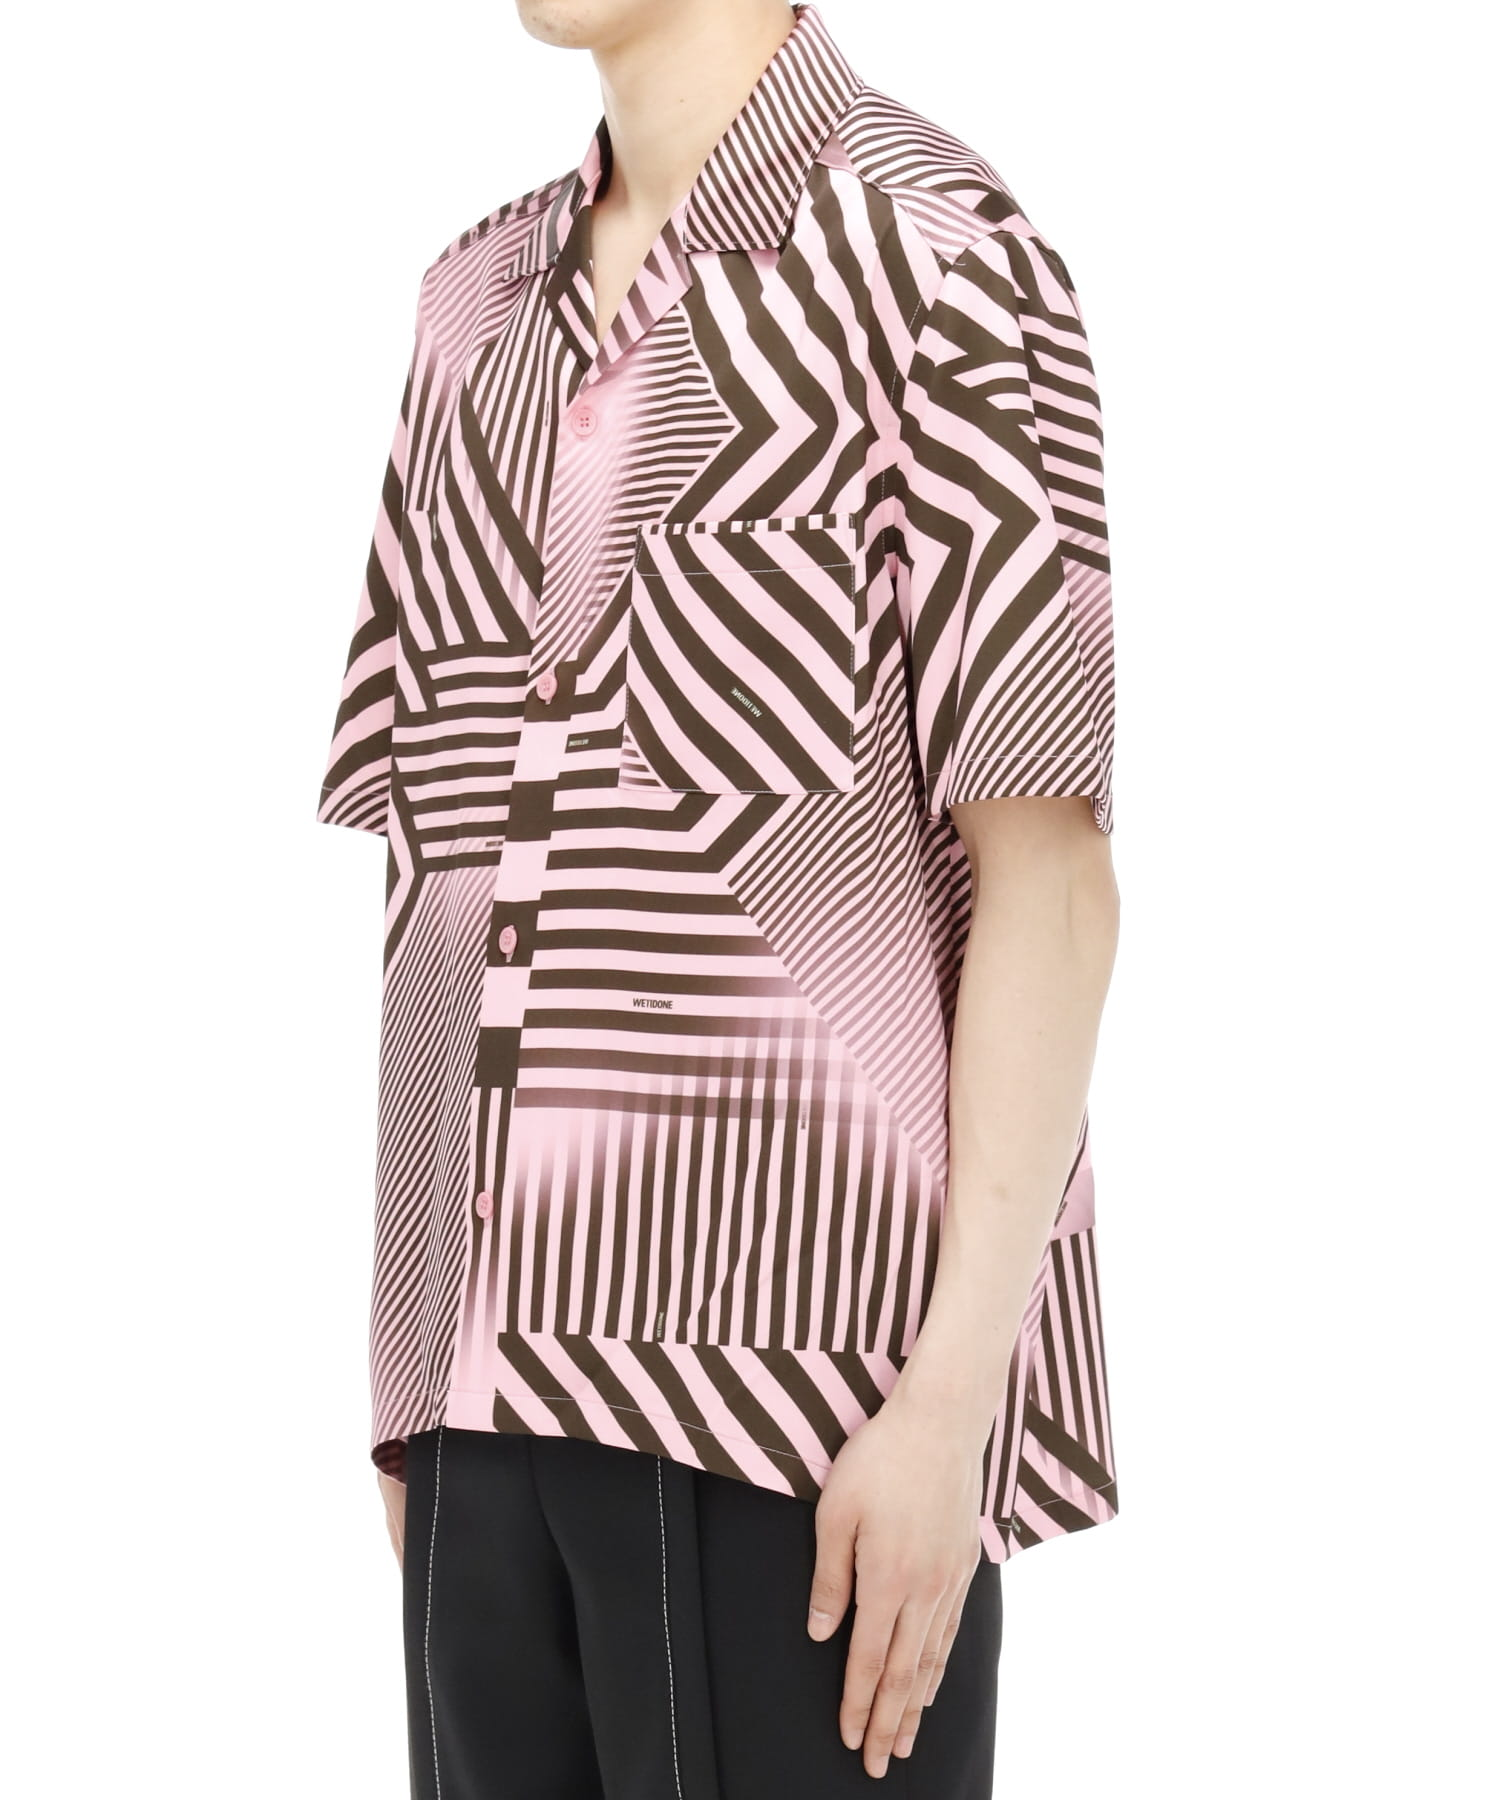 PINK GEOMETRIC PRINT SHORT SLEEVE SHIRT